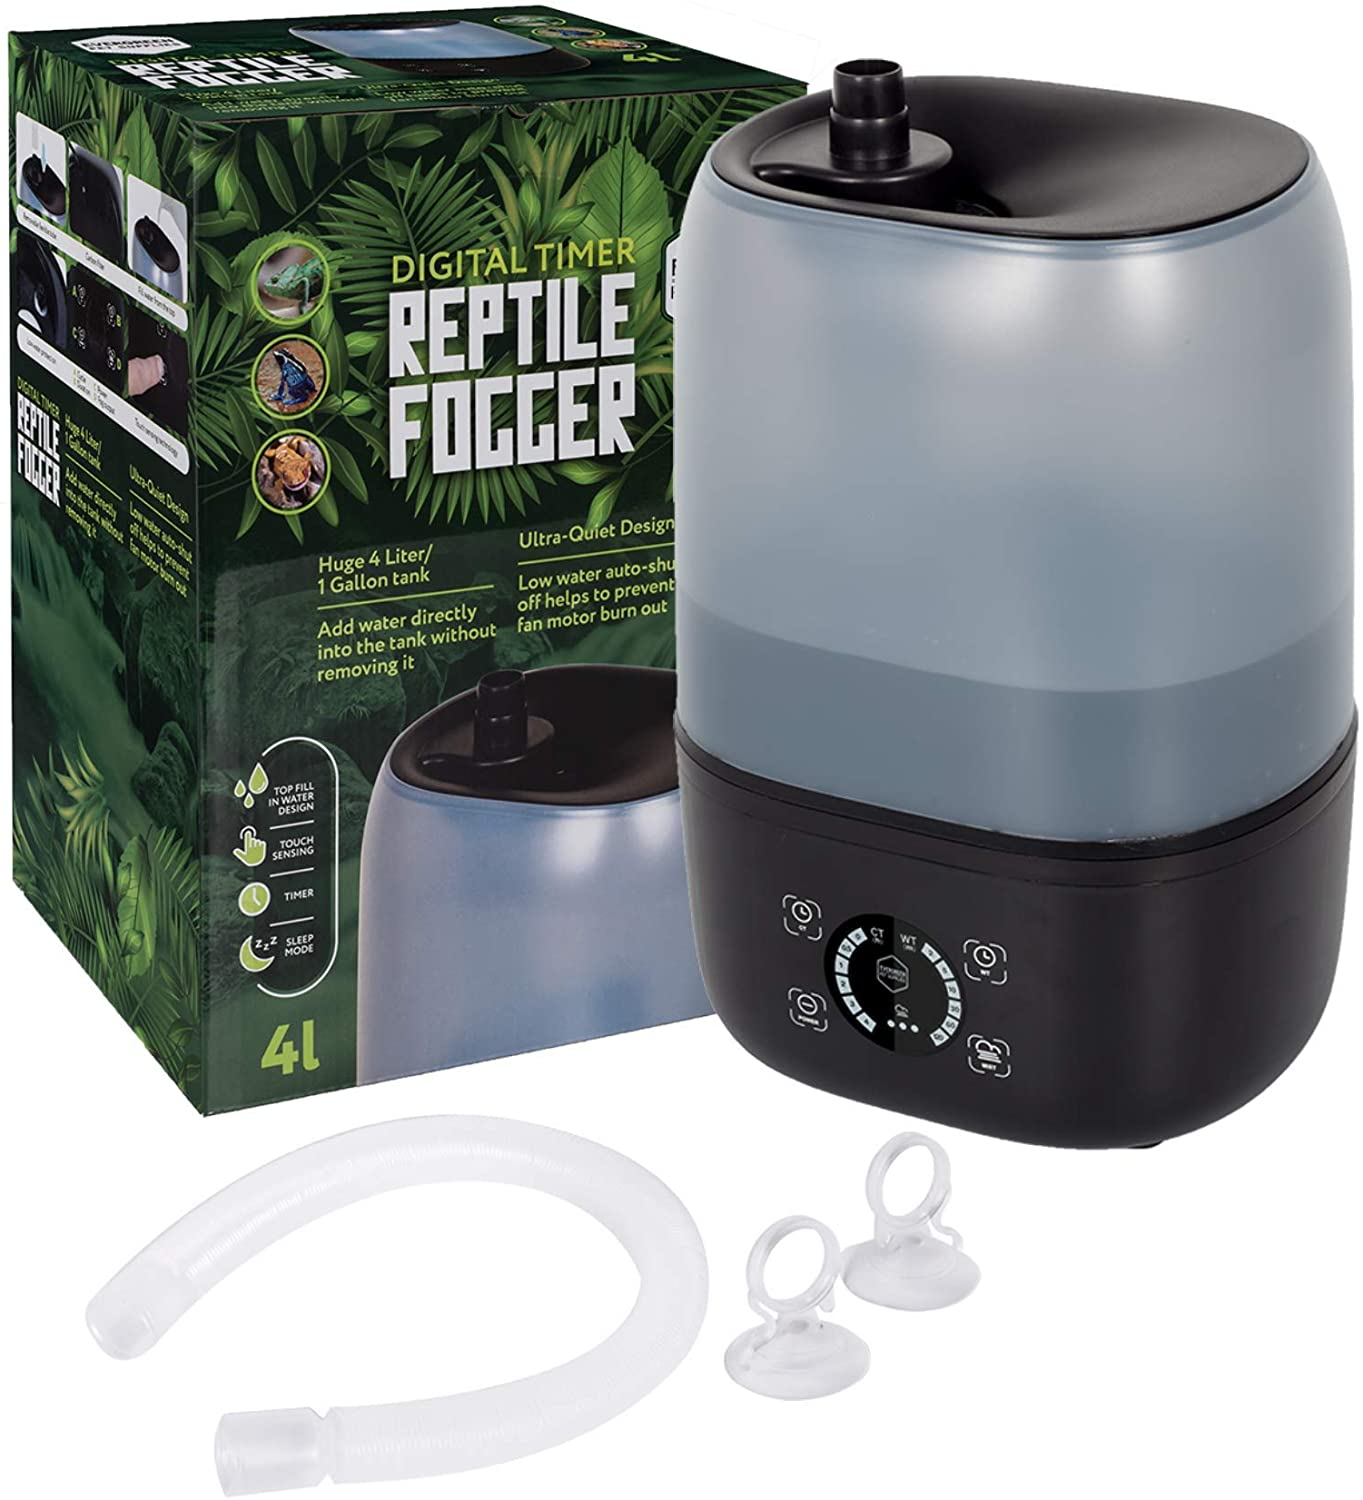 Coospider Reptile Fogger Terrariums Humidifier Fog Machine Mister 3 Liter Tank 380Lhr High Volume Fog Ideal for a Variety of